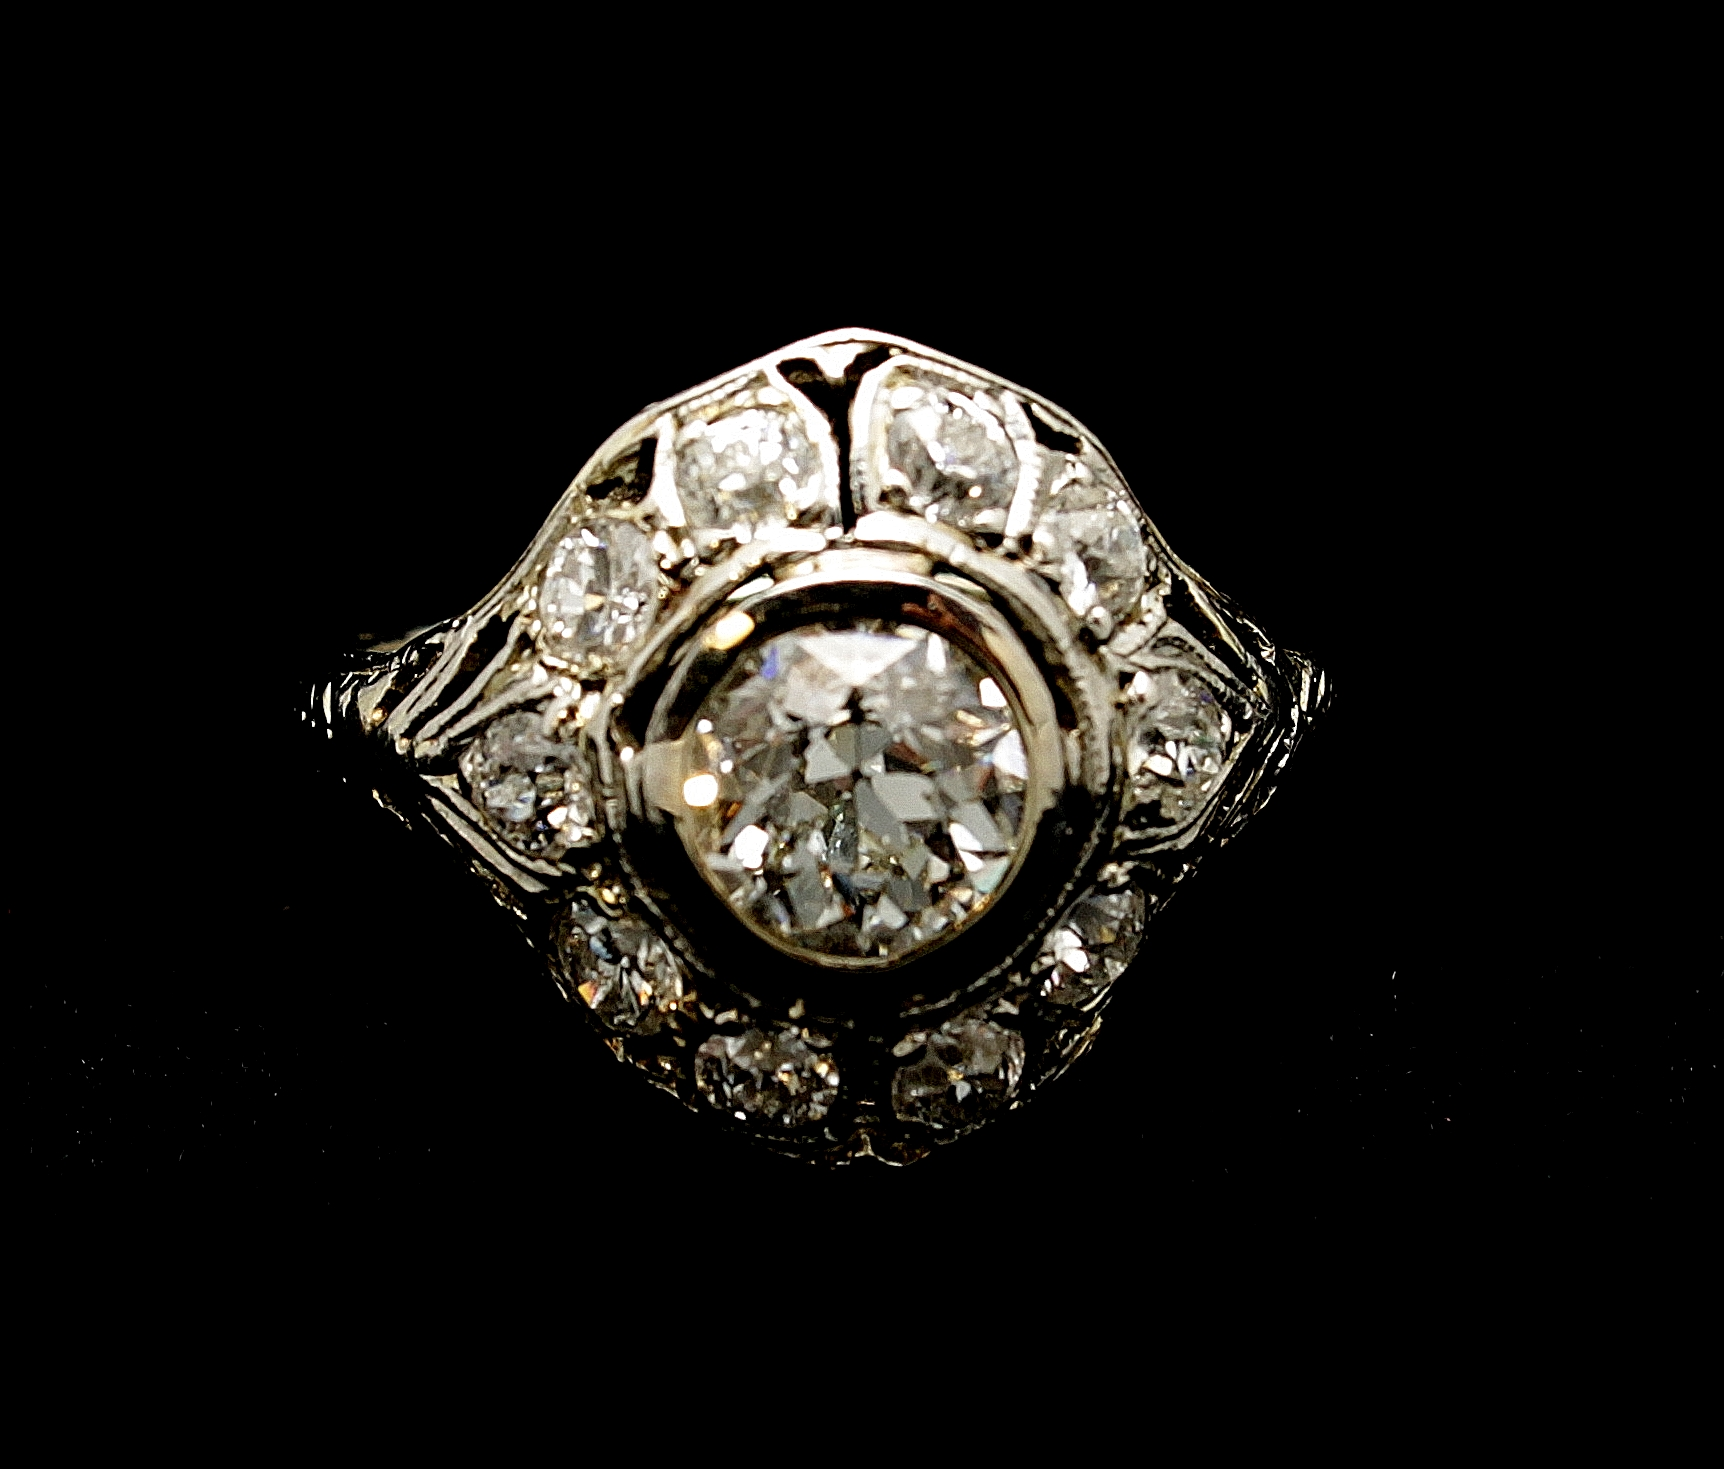 Antique 18kt Diamond Old European Cut Ring 1.53cts